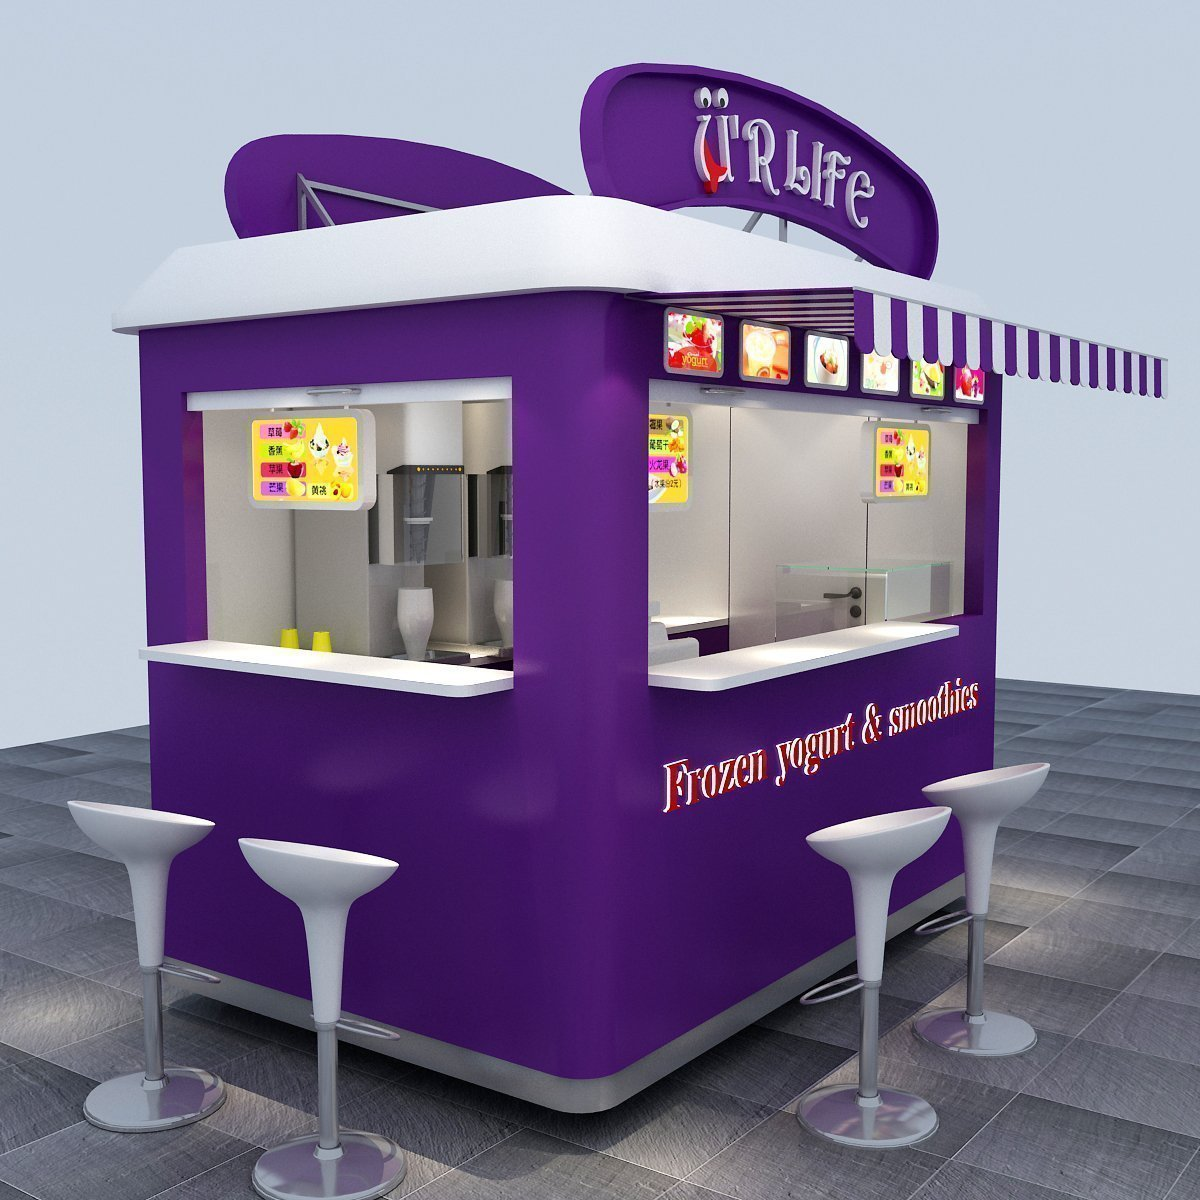 Outdoor Kiosks | Portable Food Kiosk, Retail Stands & Booth For Sale